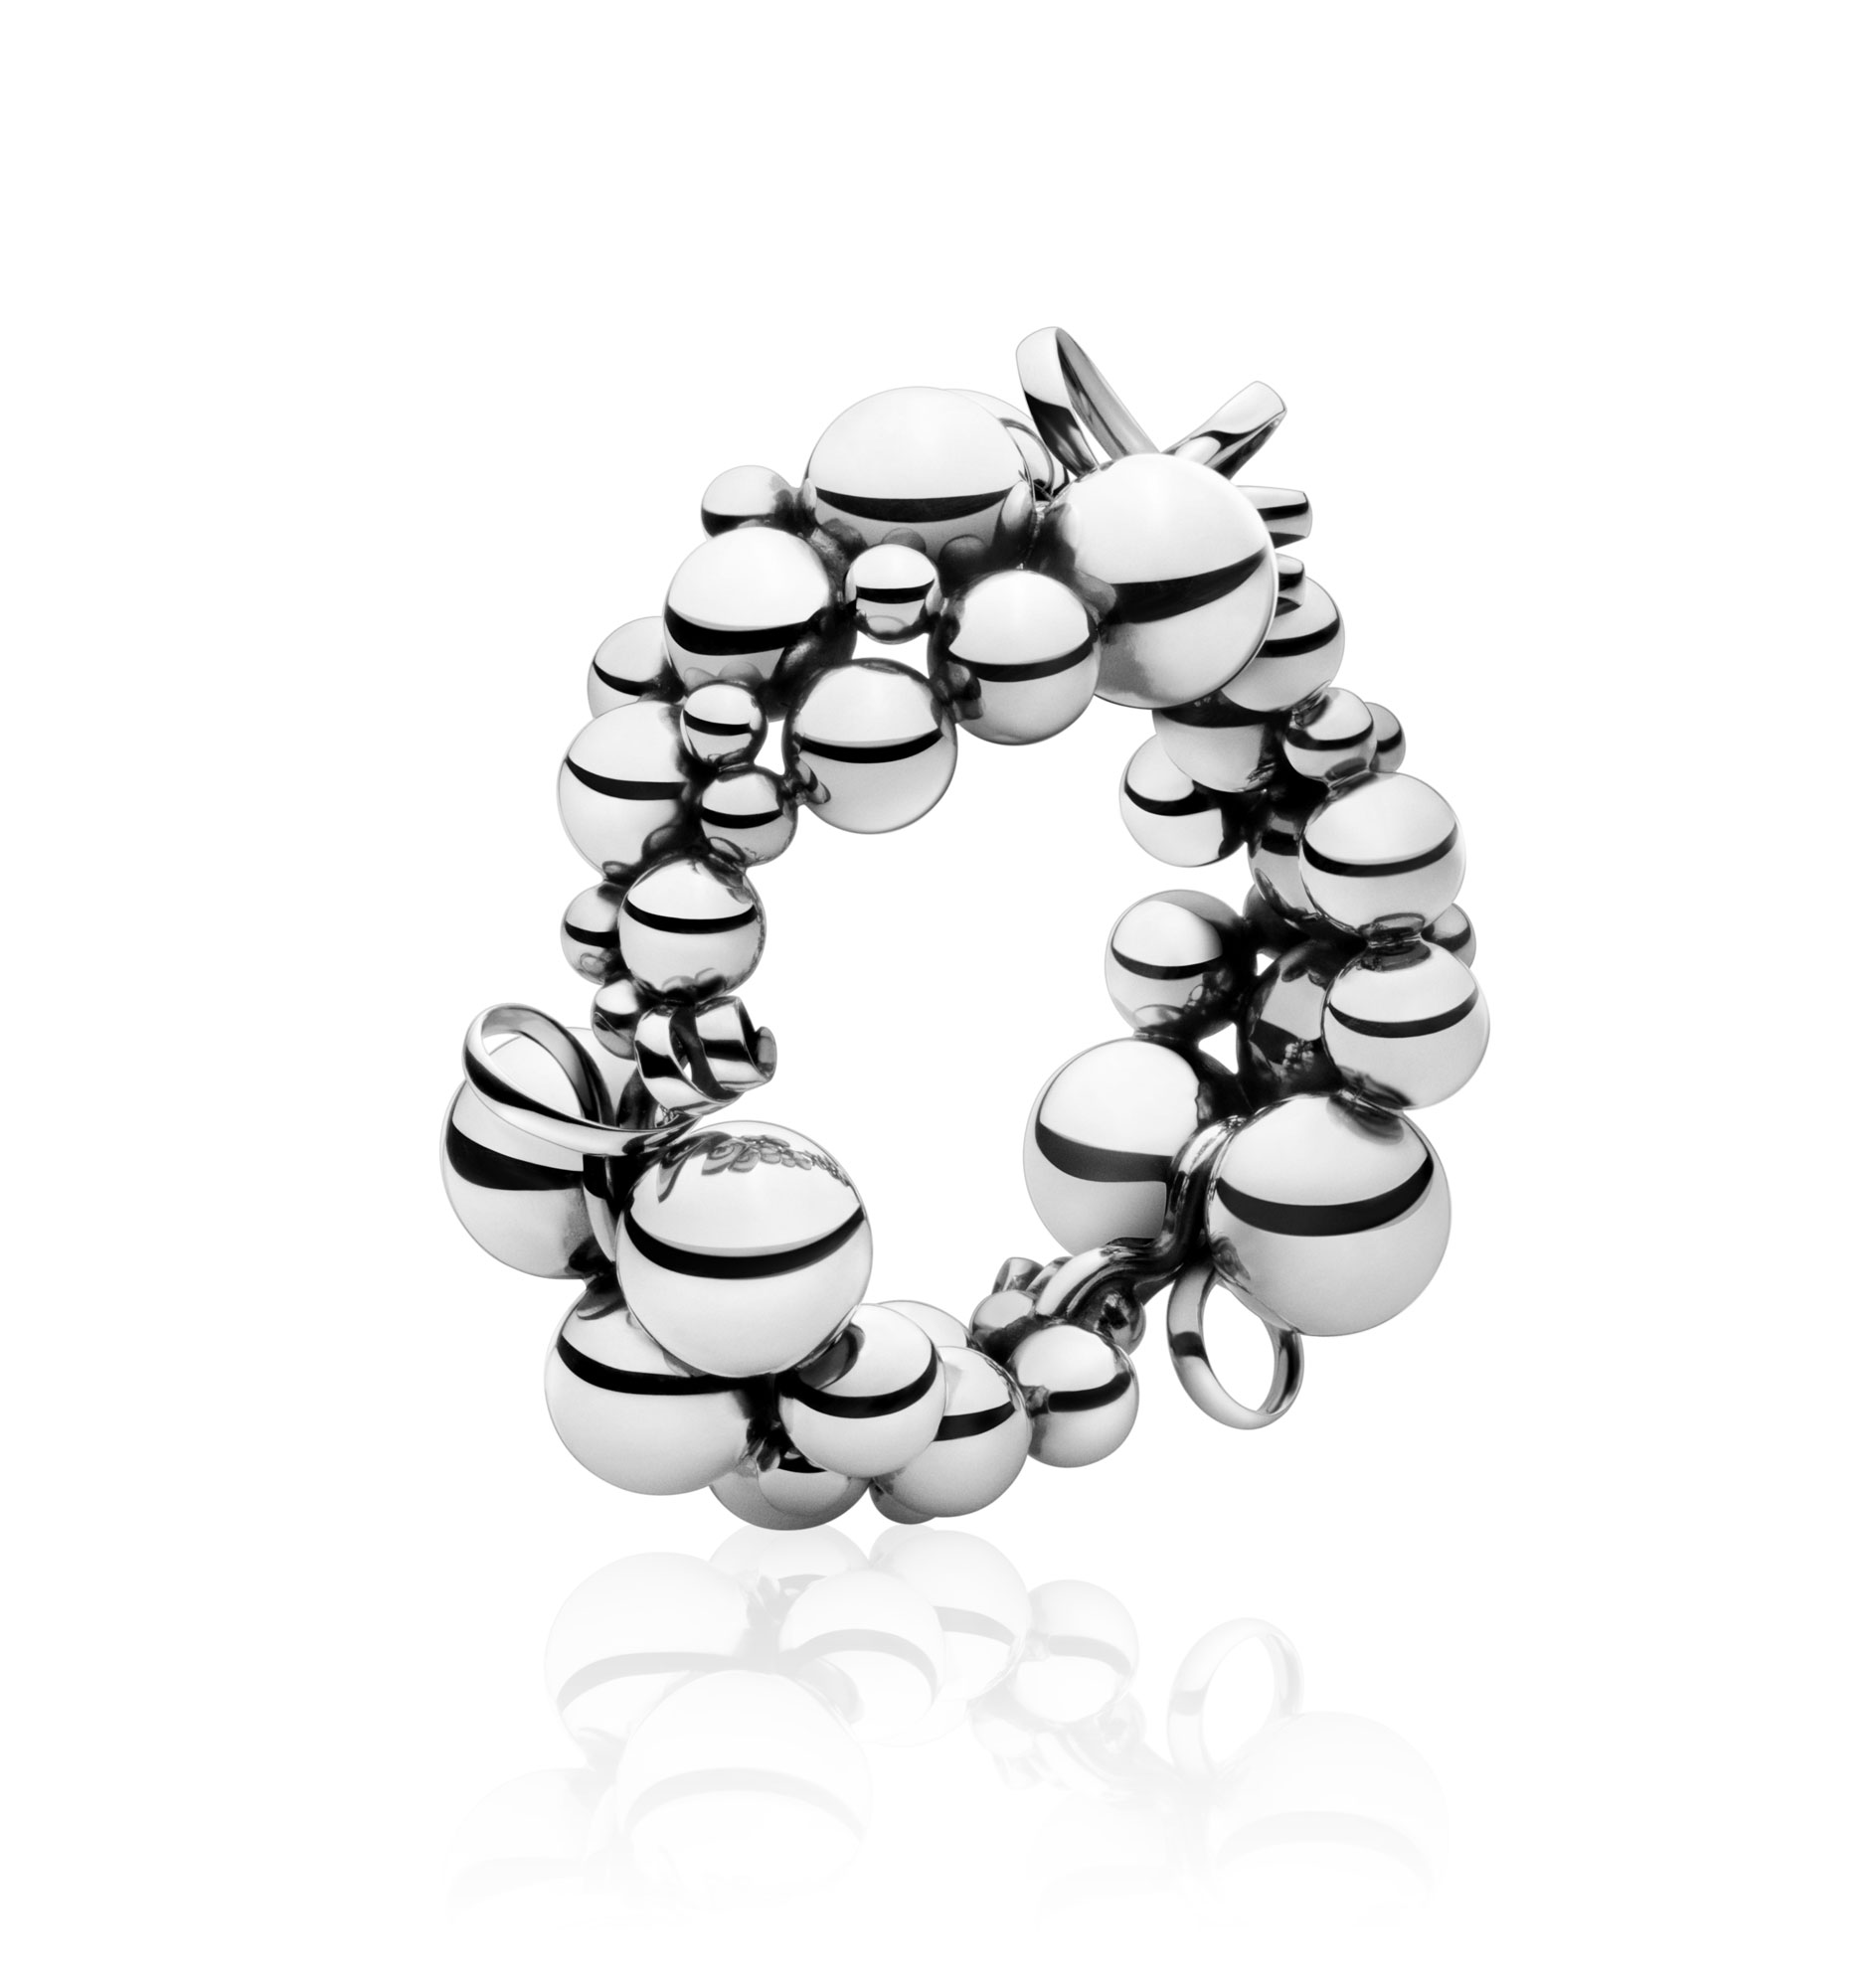 Georg Jensen Moonlight Grapes armbånd - 3530269 Sølv M/L